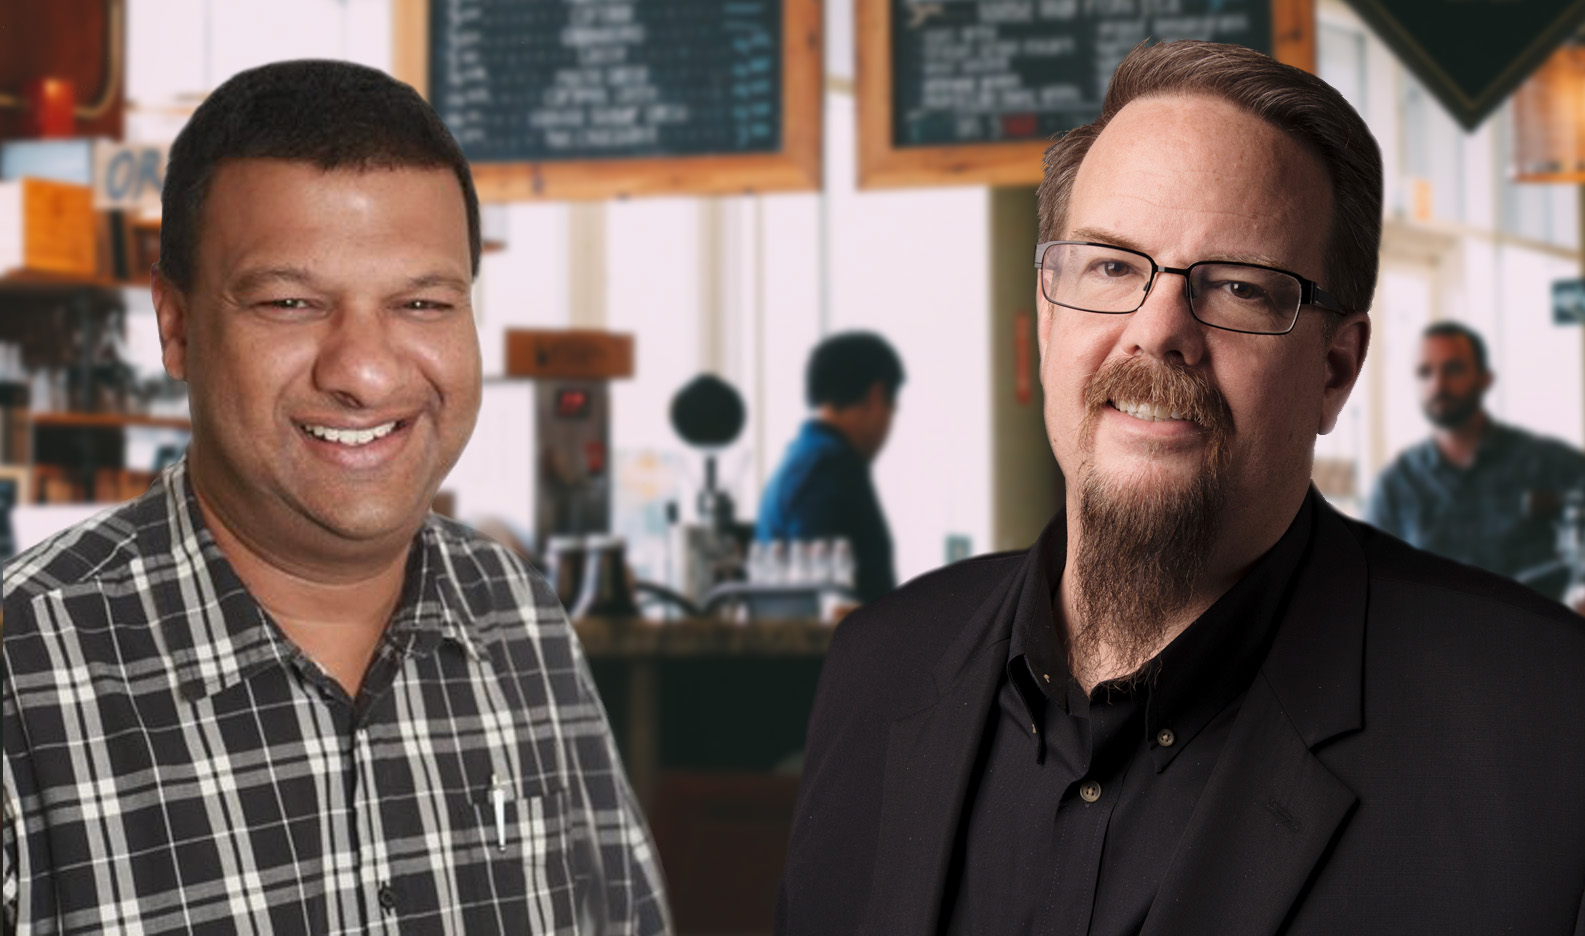 What's keeping your Church from Growing? Live Q&A with Ed Stetzer and Raj Gupta